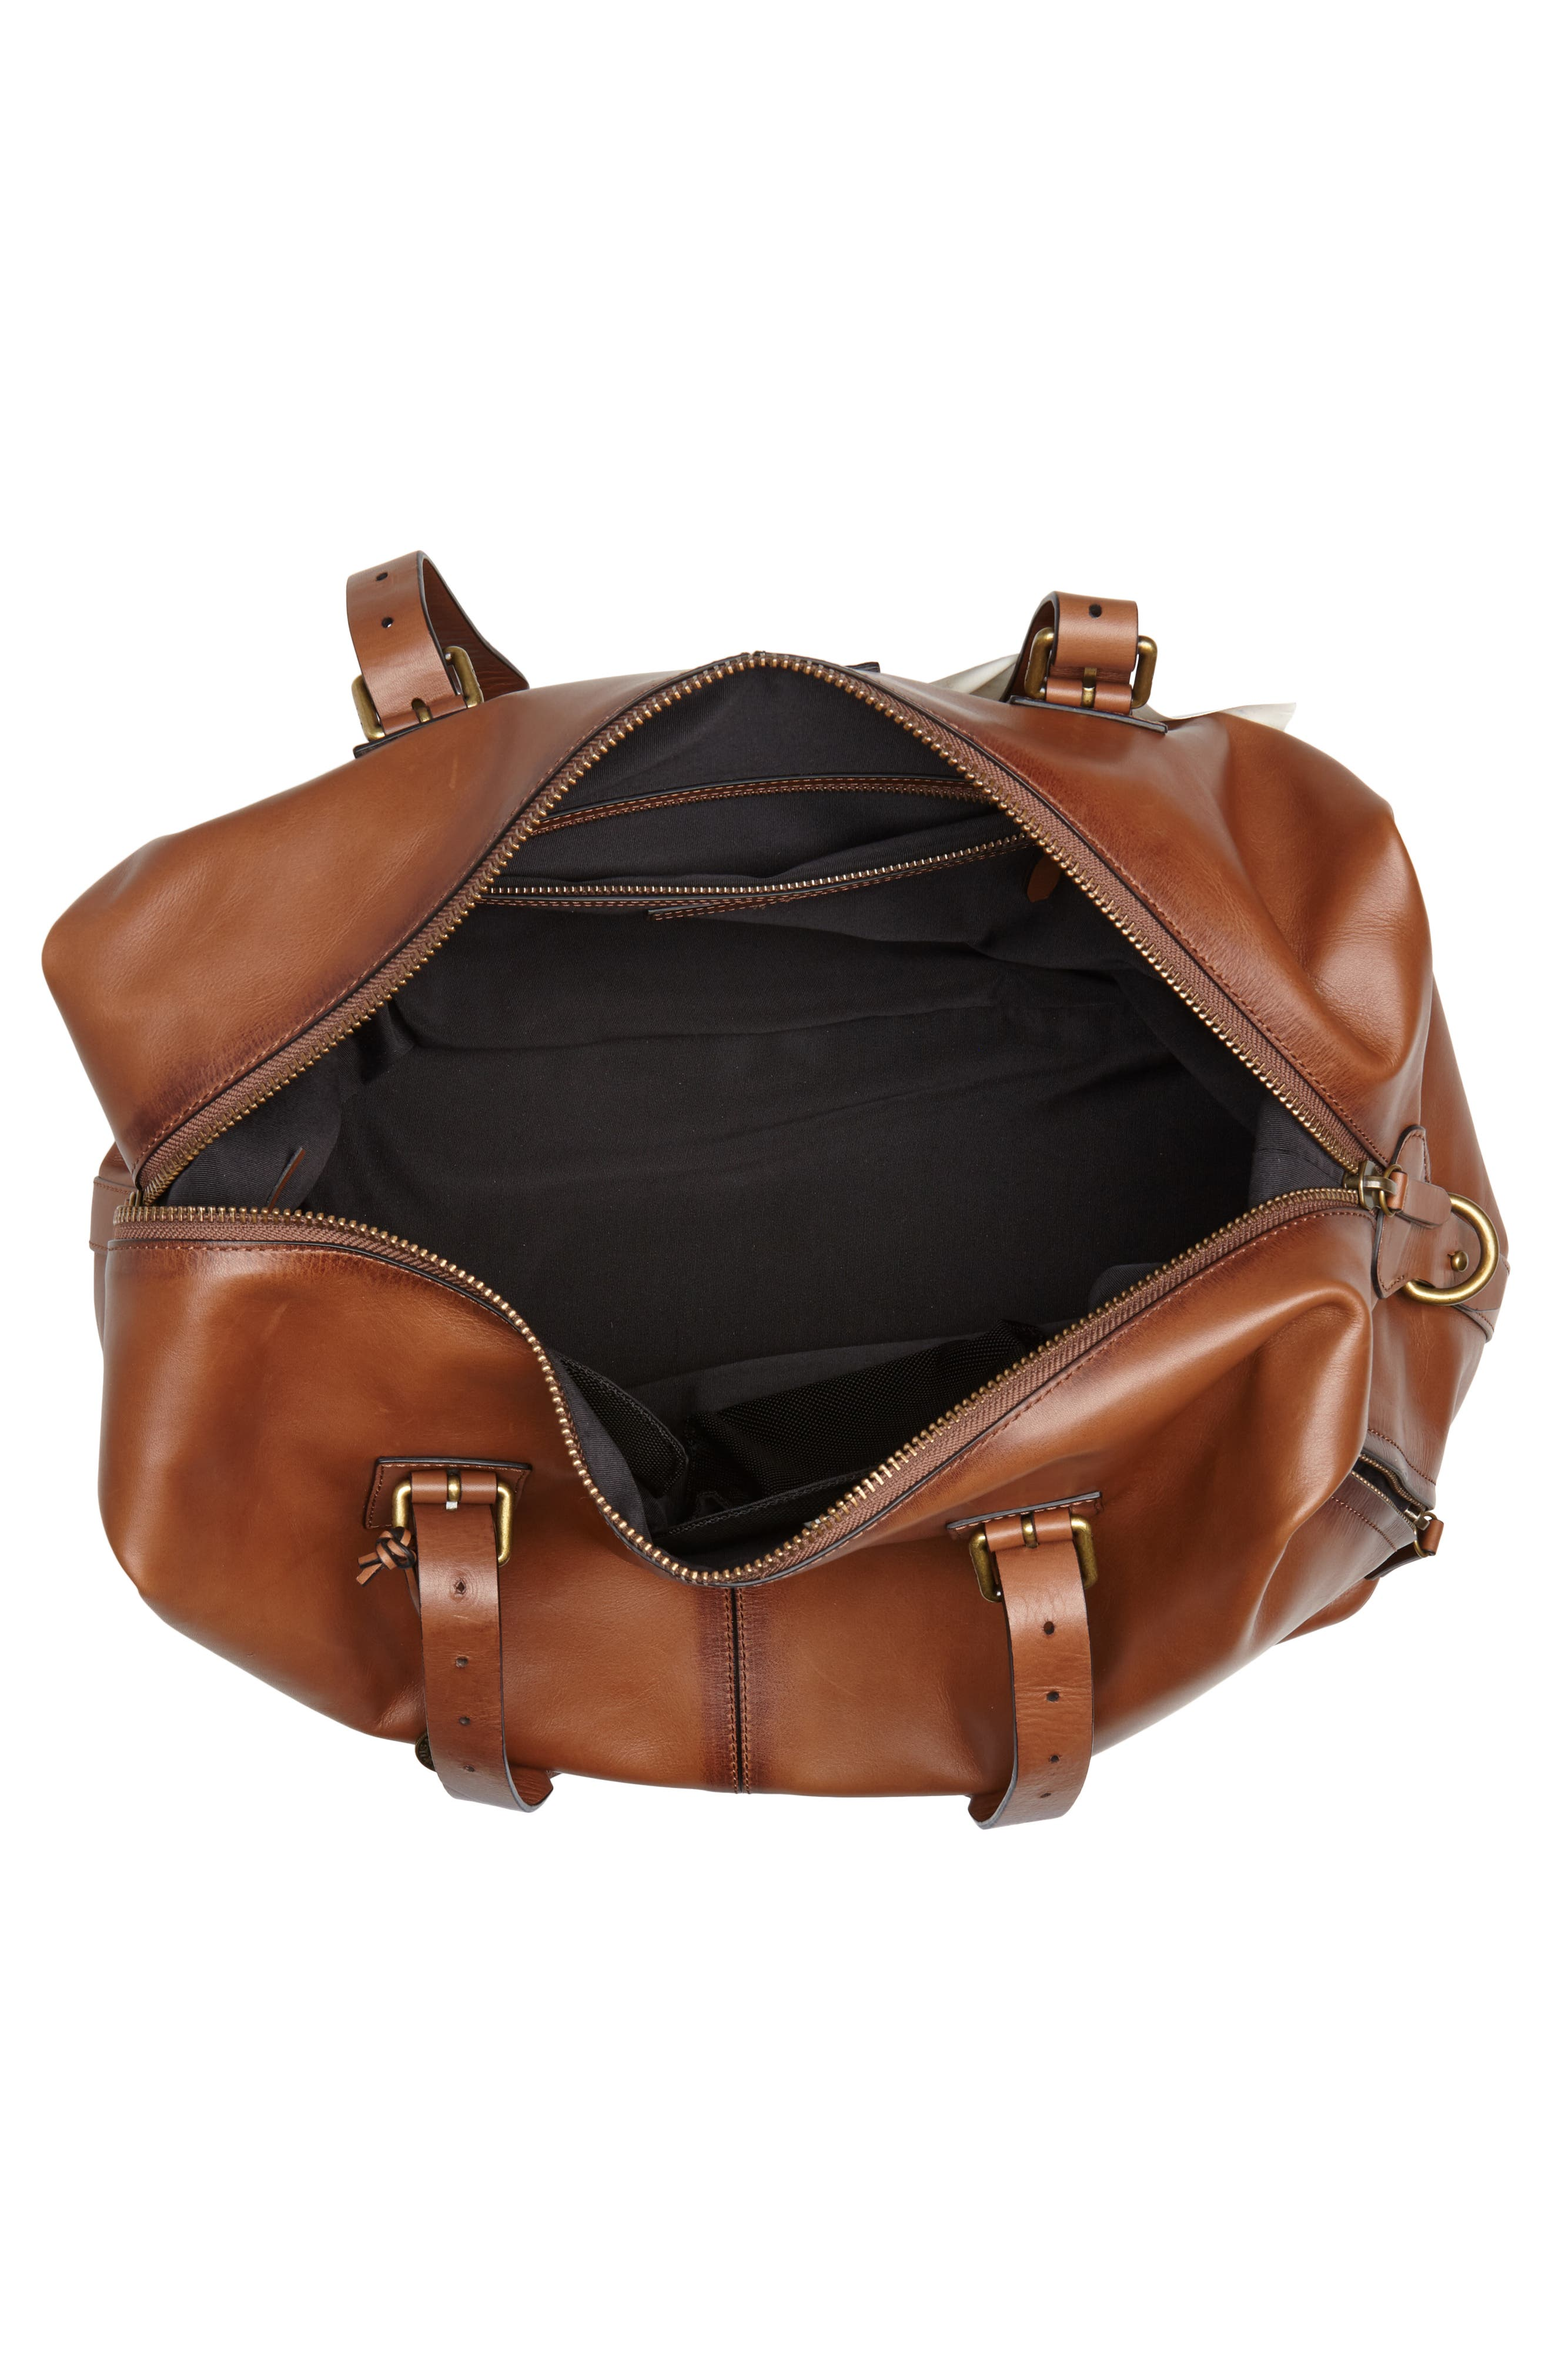 Heritage Leather Duffel Bag,                             Alternate thumbnail 4, color,                             Brownstone